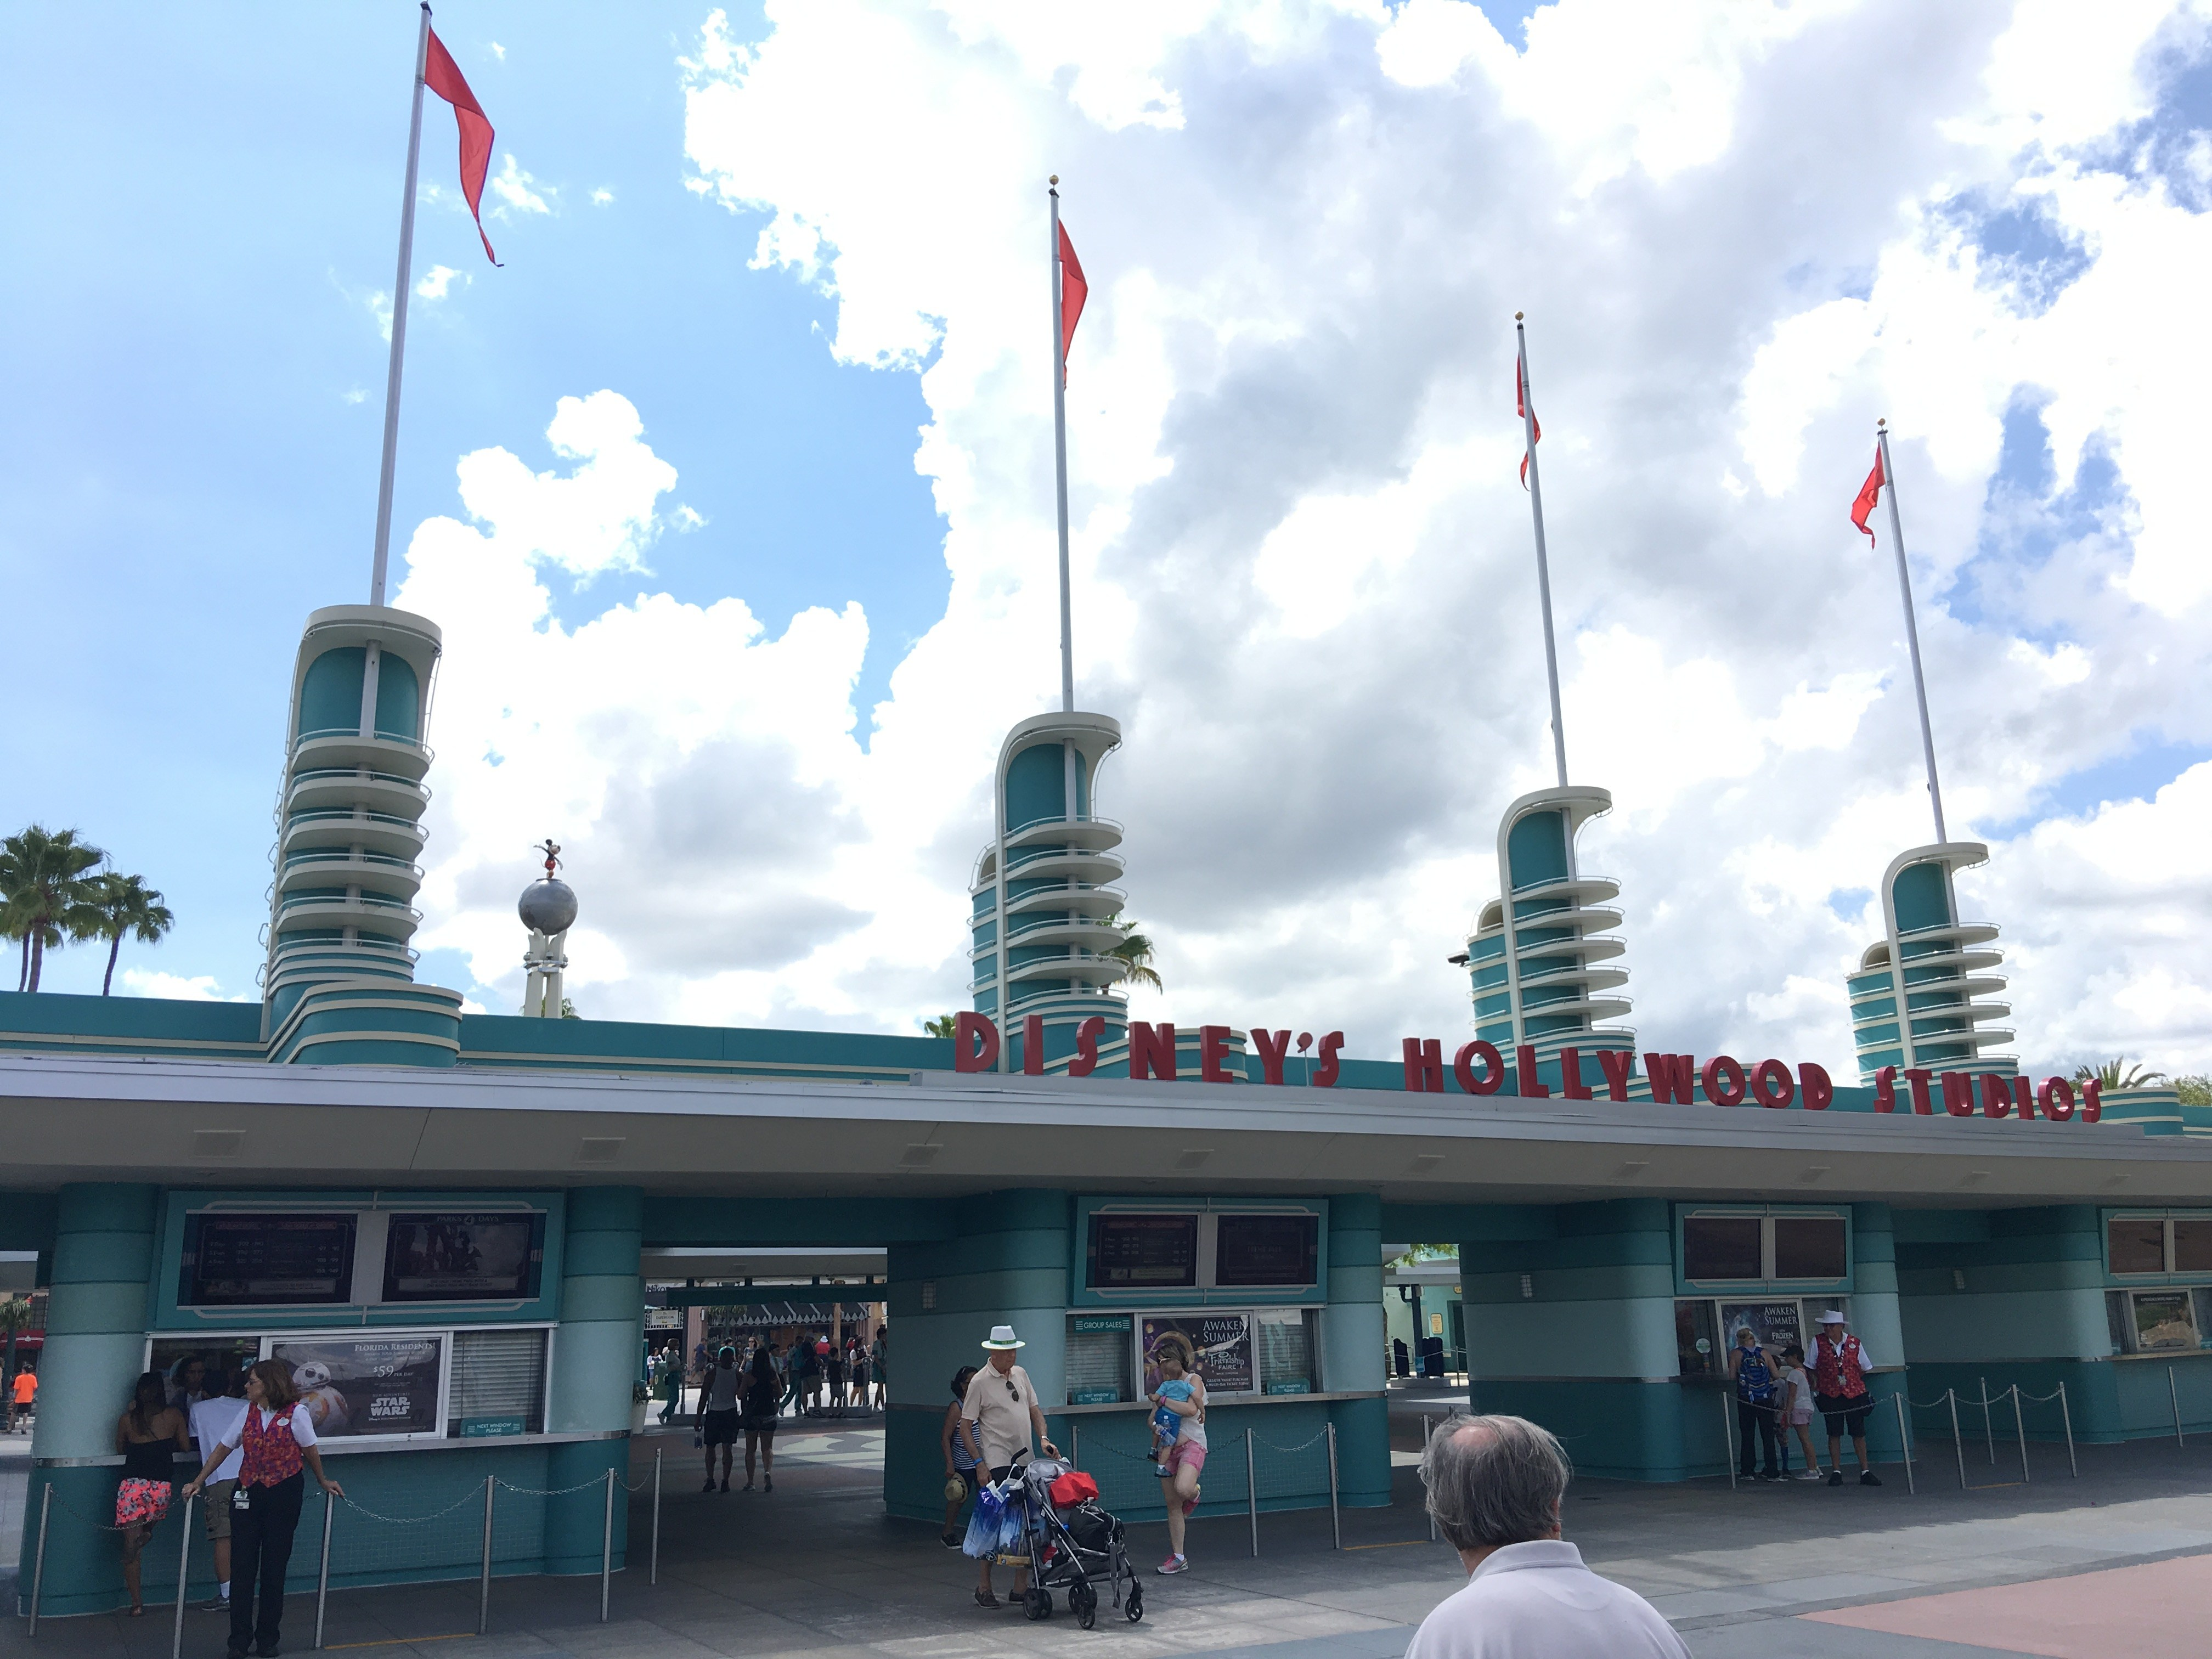 Disney Says Disney's Hollywood Studios Will Not Be Changing Its Name